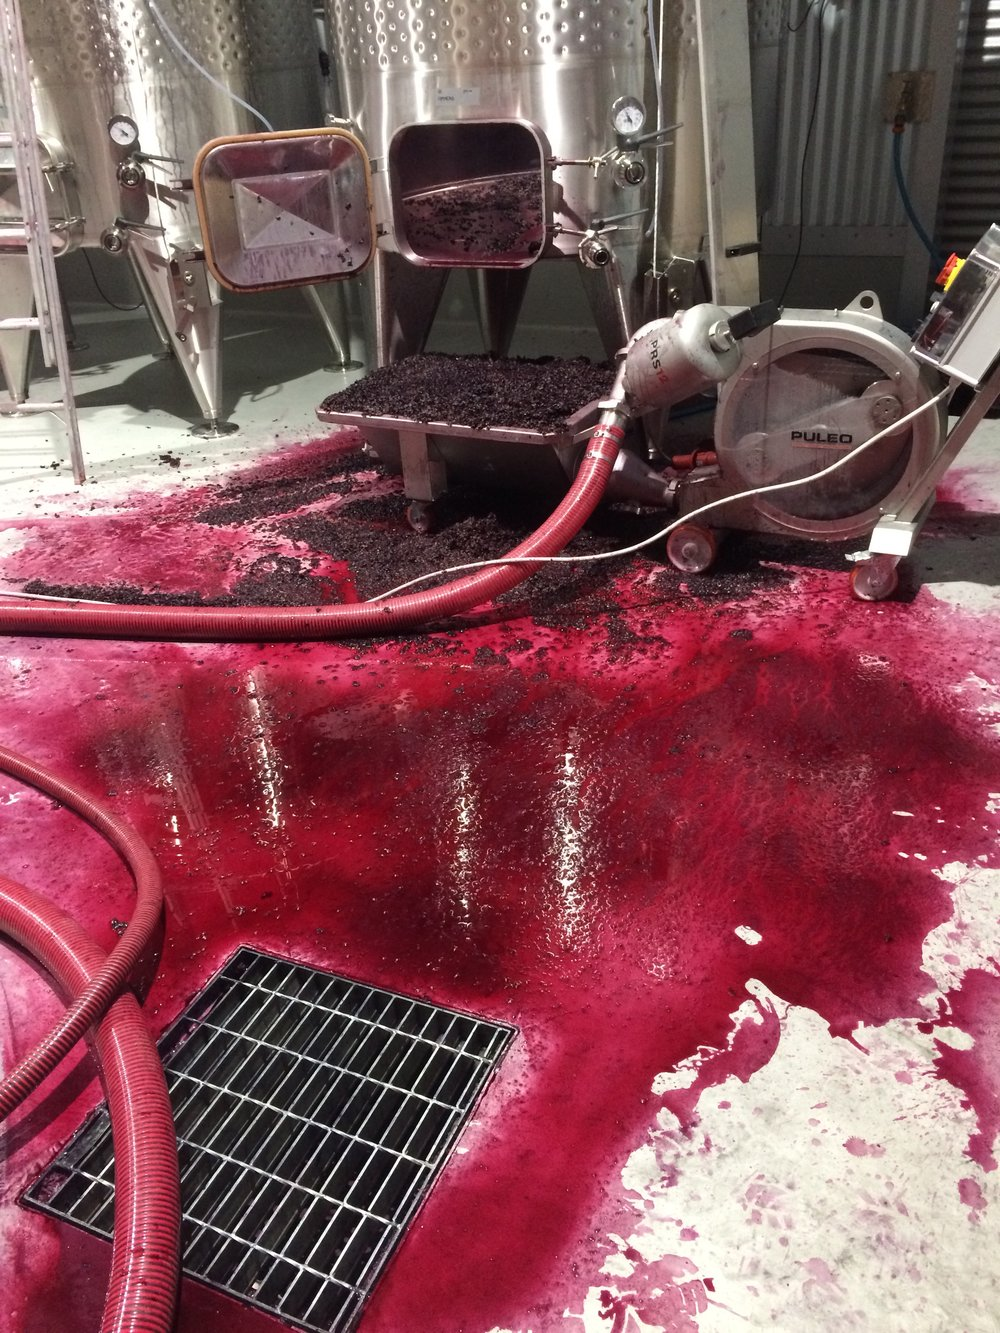 Sometimes things go wrong. All the winery equipment had performed really well, right up until the last day of processing when the pump stopped working. Oh dear, more mess to clean up.